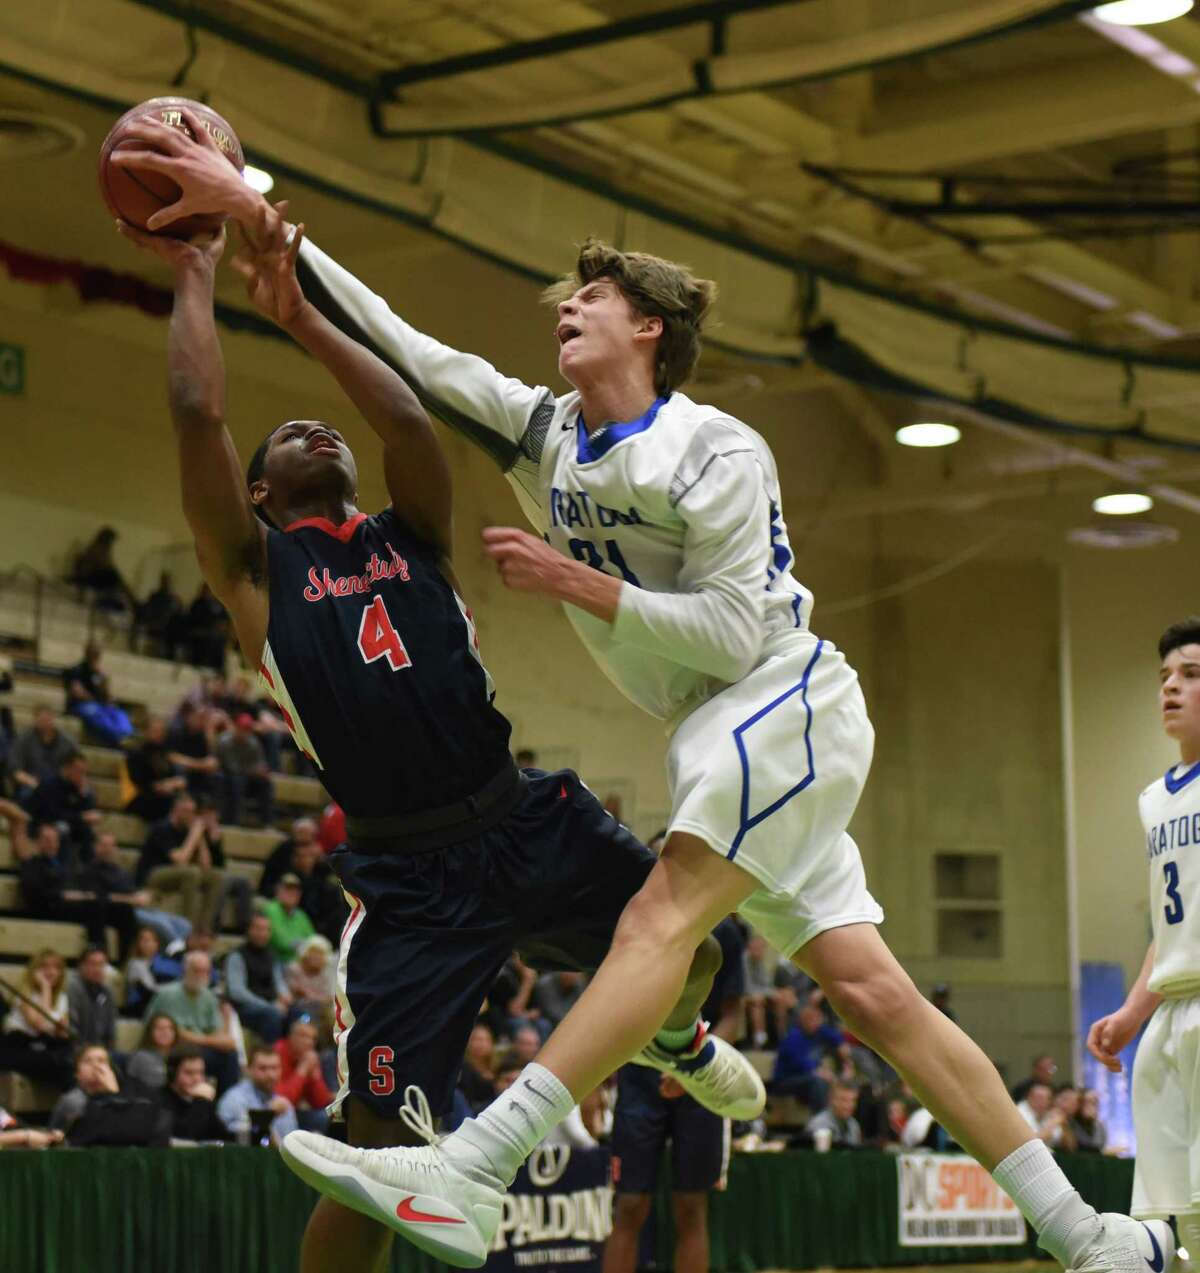 Schenectady's Cameron Coles, left, is blocked by Saratoga's Will Fox, right, during the Class Class AA boys' basketball quarterfinal on Saturday, Feb. 25, 2017, at Hudson Valley Community College in Troy, N.Y. (Will Waldron/Times Union)